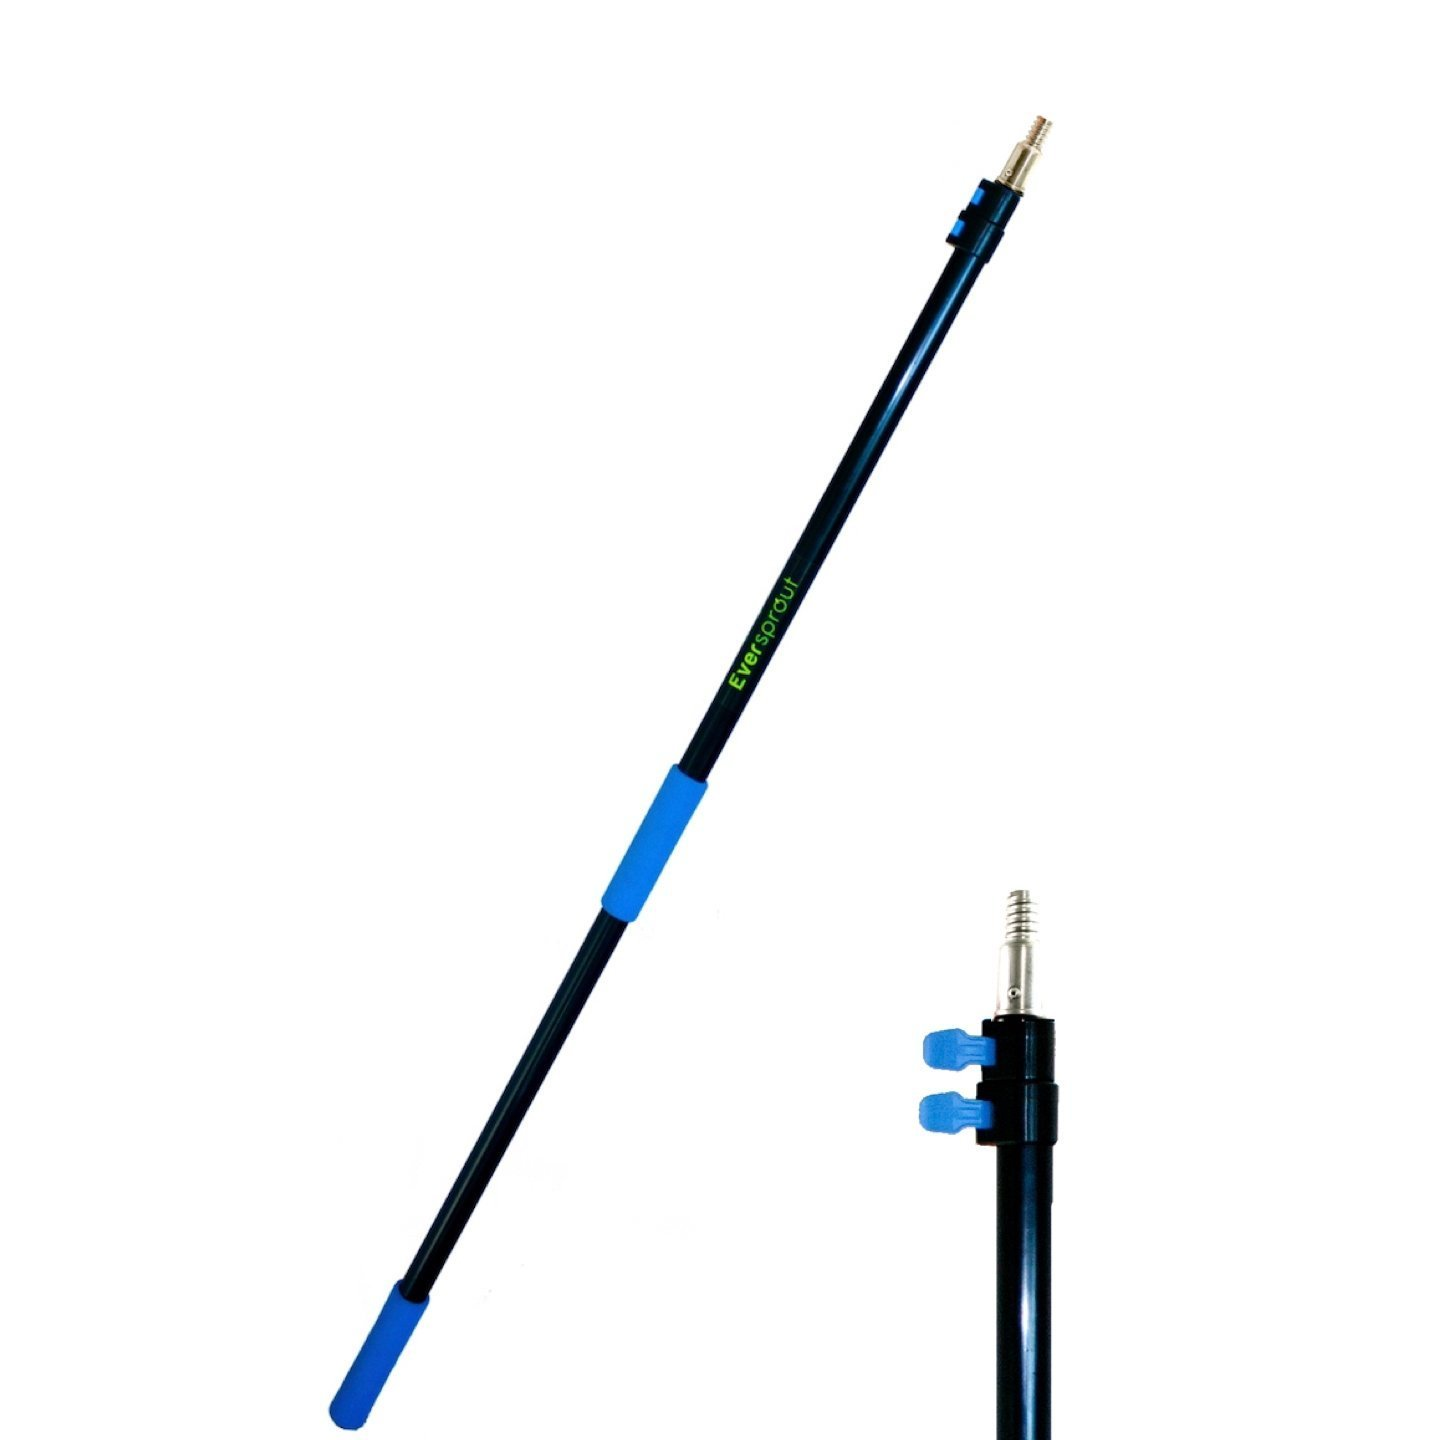 EVERSPROUT 6.5-to-18 Foot Telescopic Extension Pole (25 Foot Reach) | Lightweight, Rust-Resistant Aluminum | 3/4'' Thread Tip works for Twist-On Squeegee, Duster, Paint Roller, Bulb Changer (pole only) by EVERSPROUT